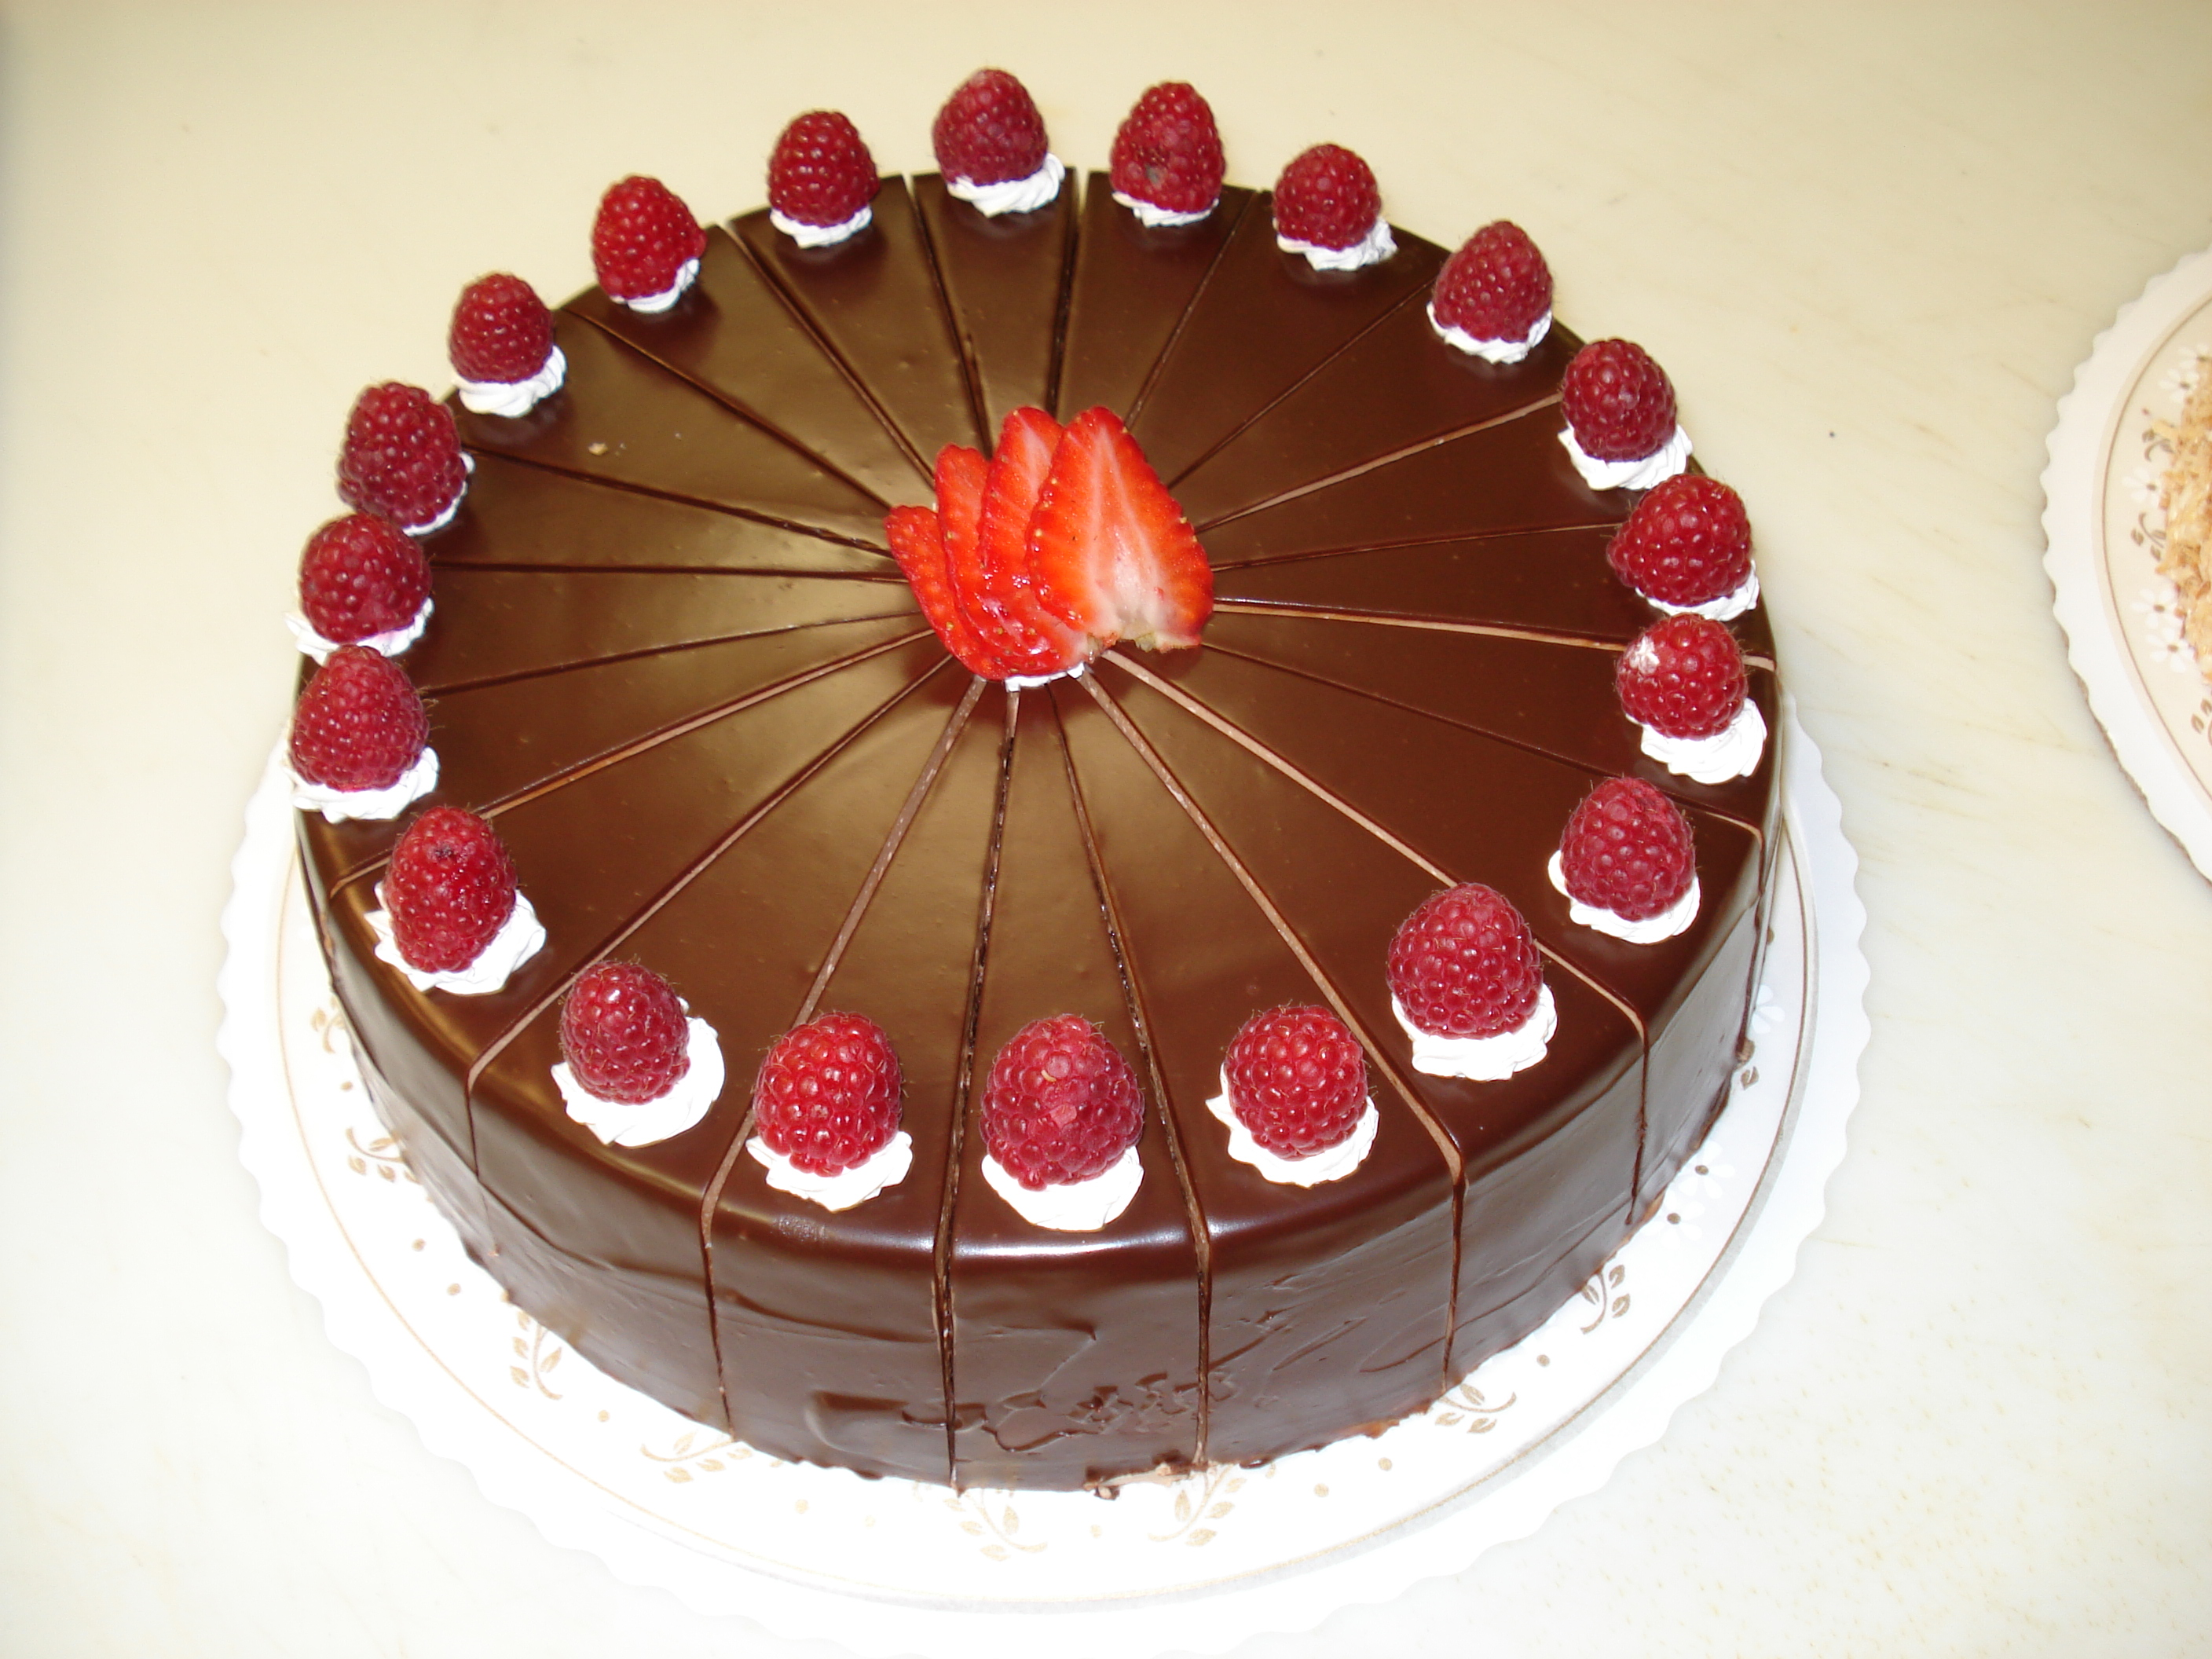 Raspberry and chocolate mousse cake recipe